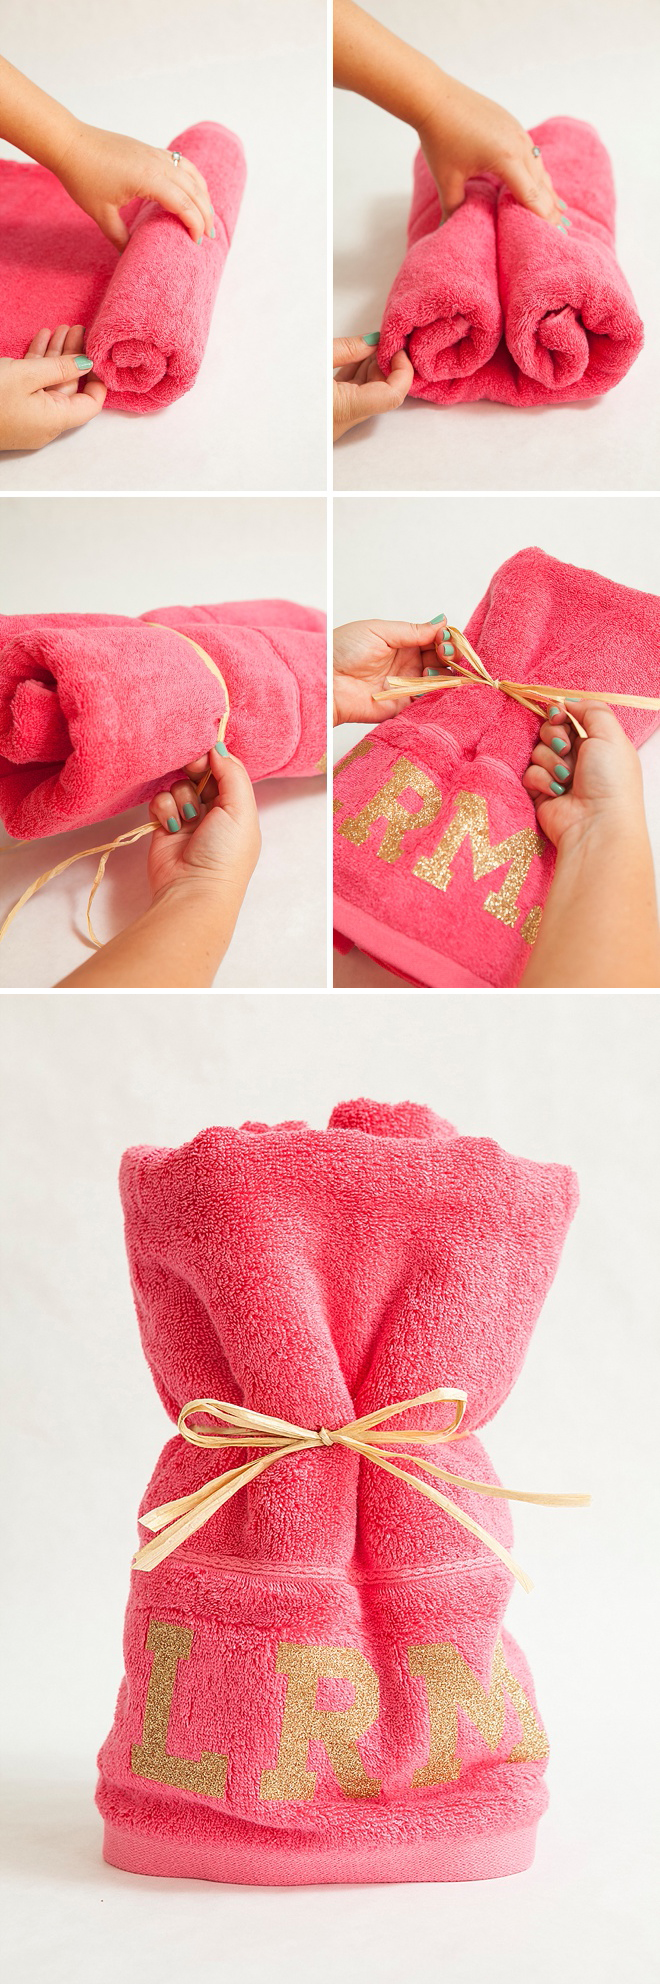 Check out these DIY Glitter Iron-On Bachelorette Party Towels!